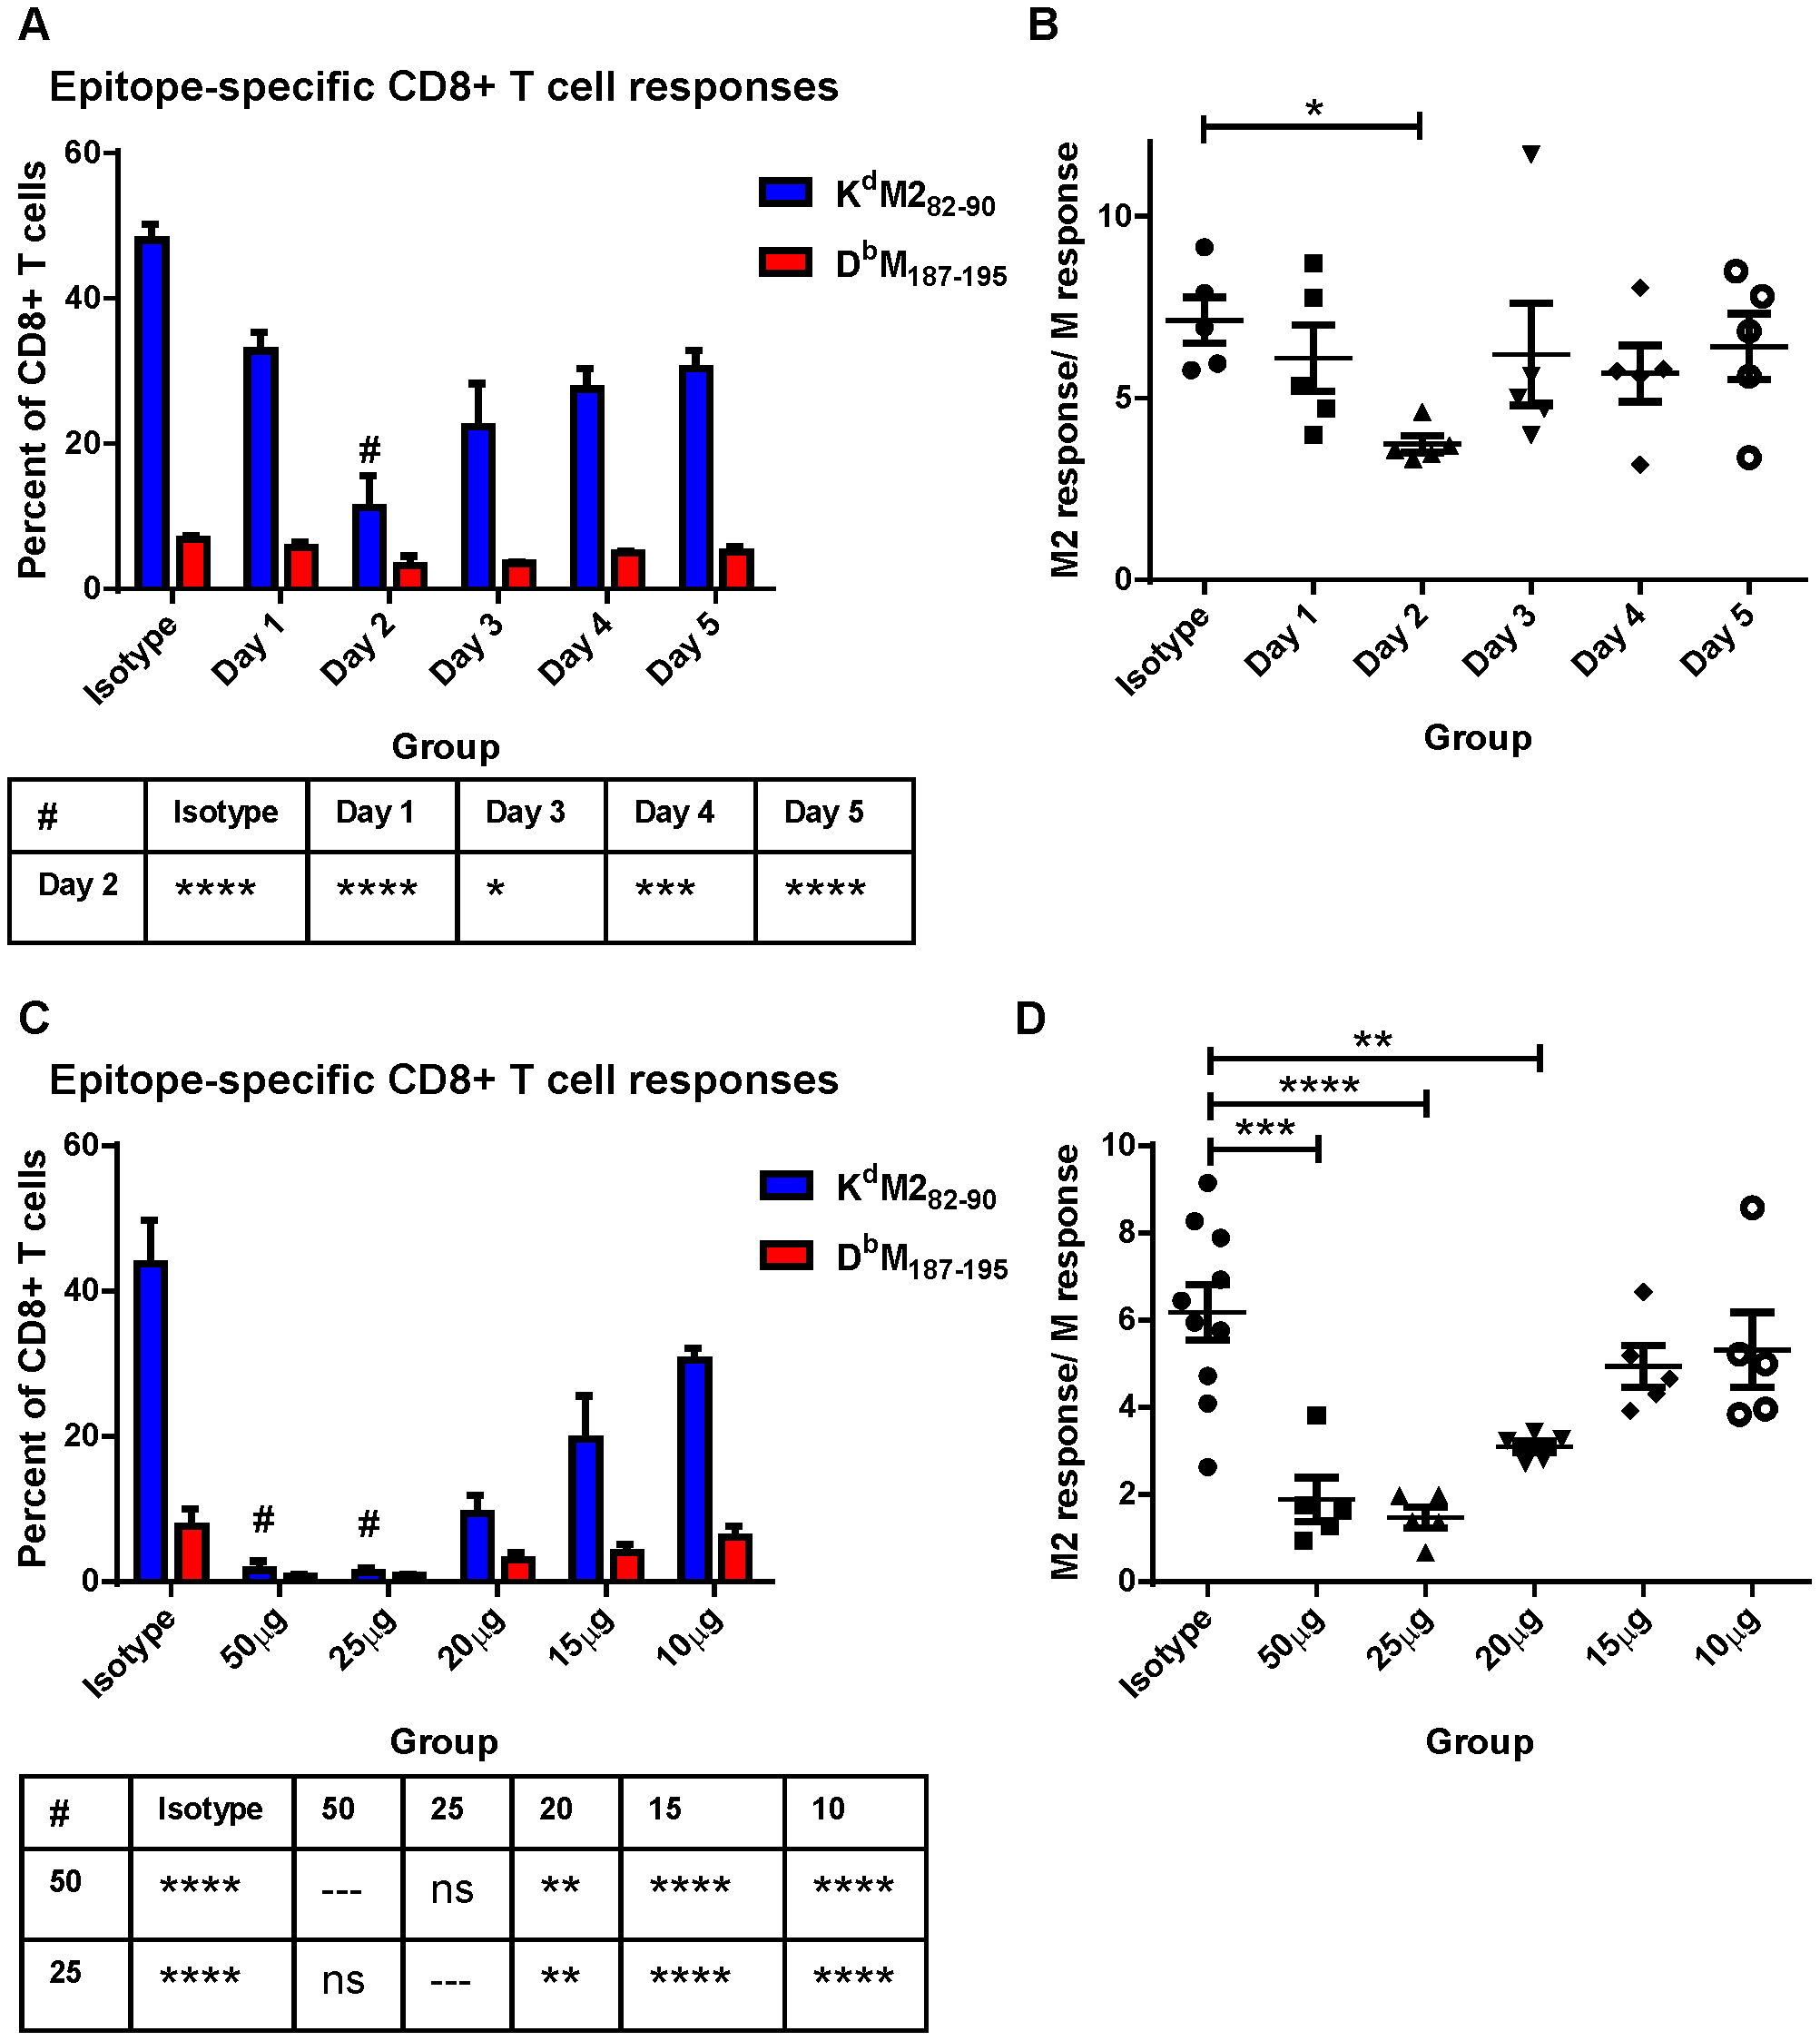 Modulating CD28-mediated costimulatory signals differentially affects K<sup>d</sup>M2<sub>82–90</sub> and D<sup>b</sup>M<sub>187–195</sub>-specific responses.